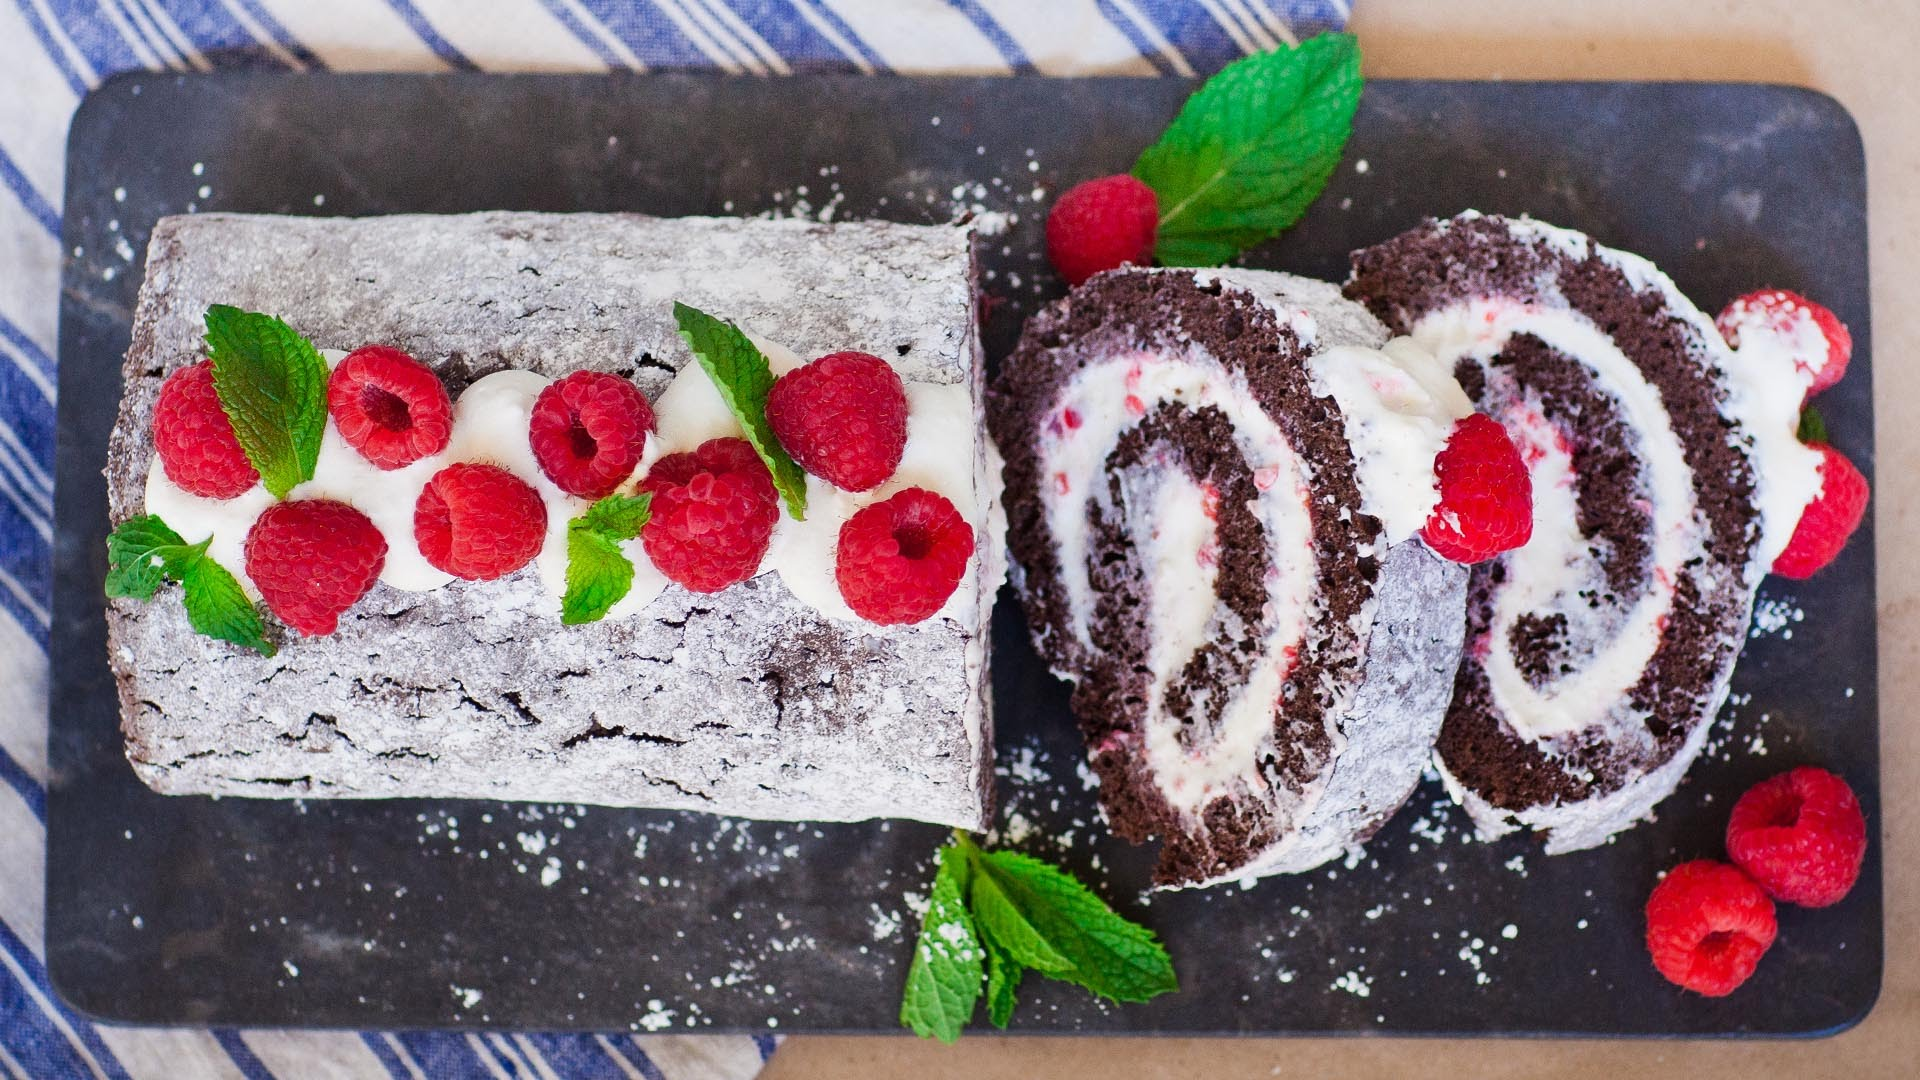 She Transforms A Chocolate Sponge Cake Into A Divine Chocolate Raspberry Swiss Roll